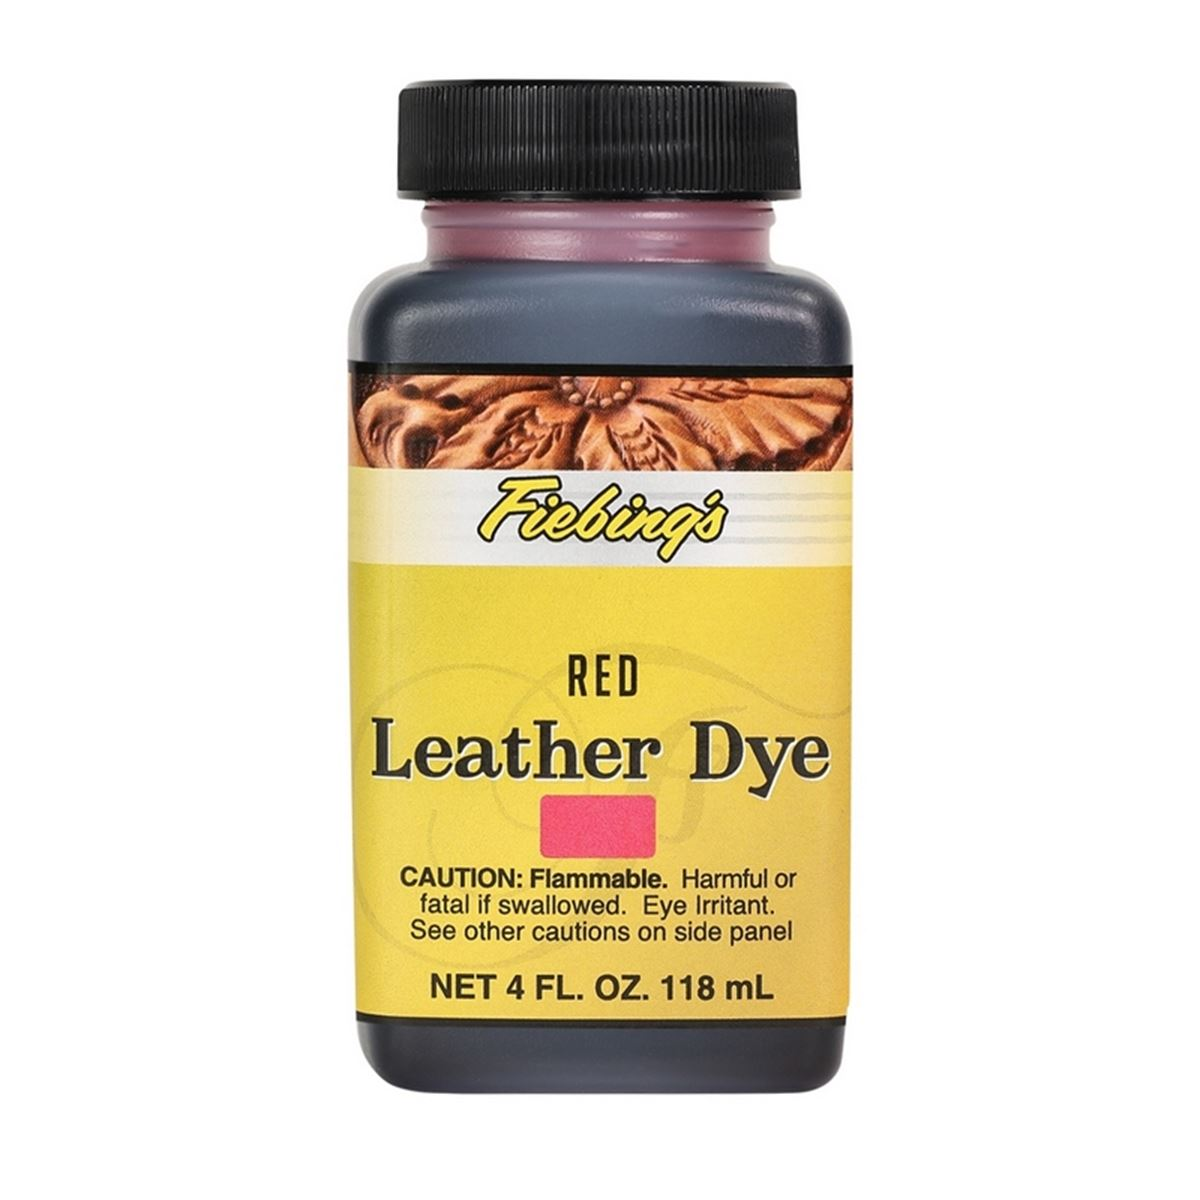 Teinture pour cuir FIEBING'S Leather dye - ROUGE - RED